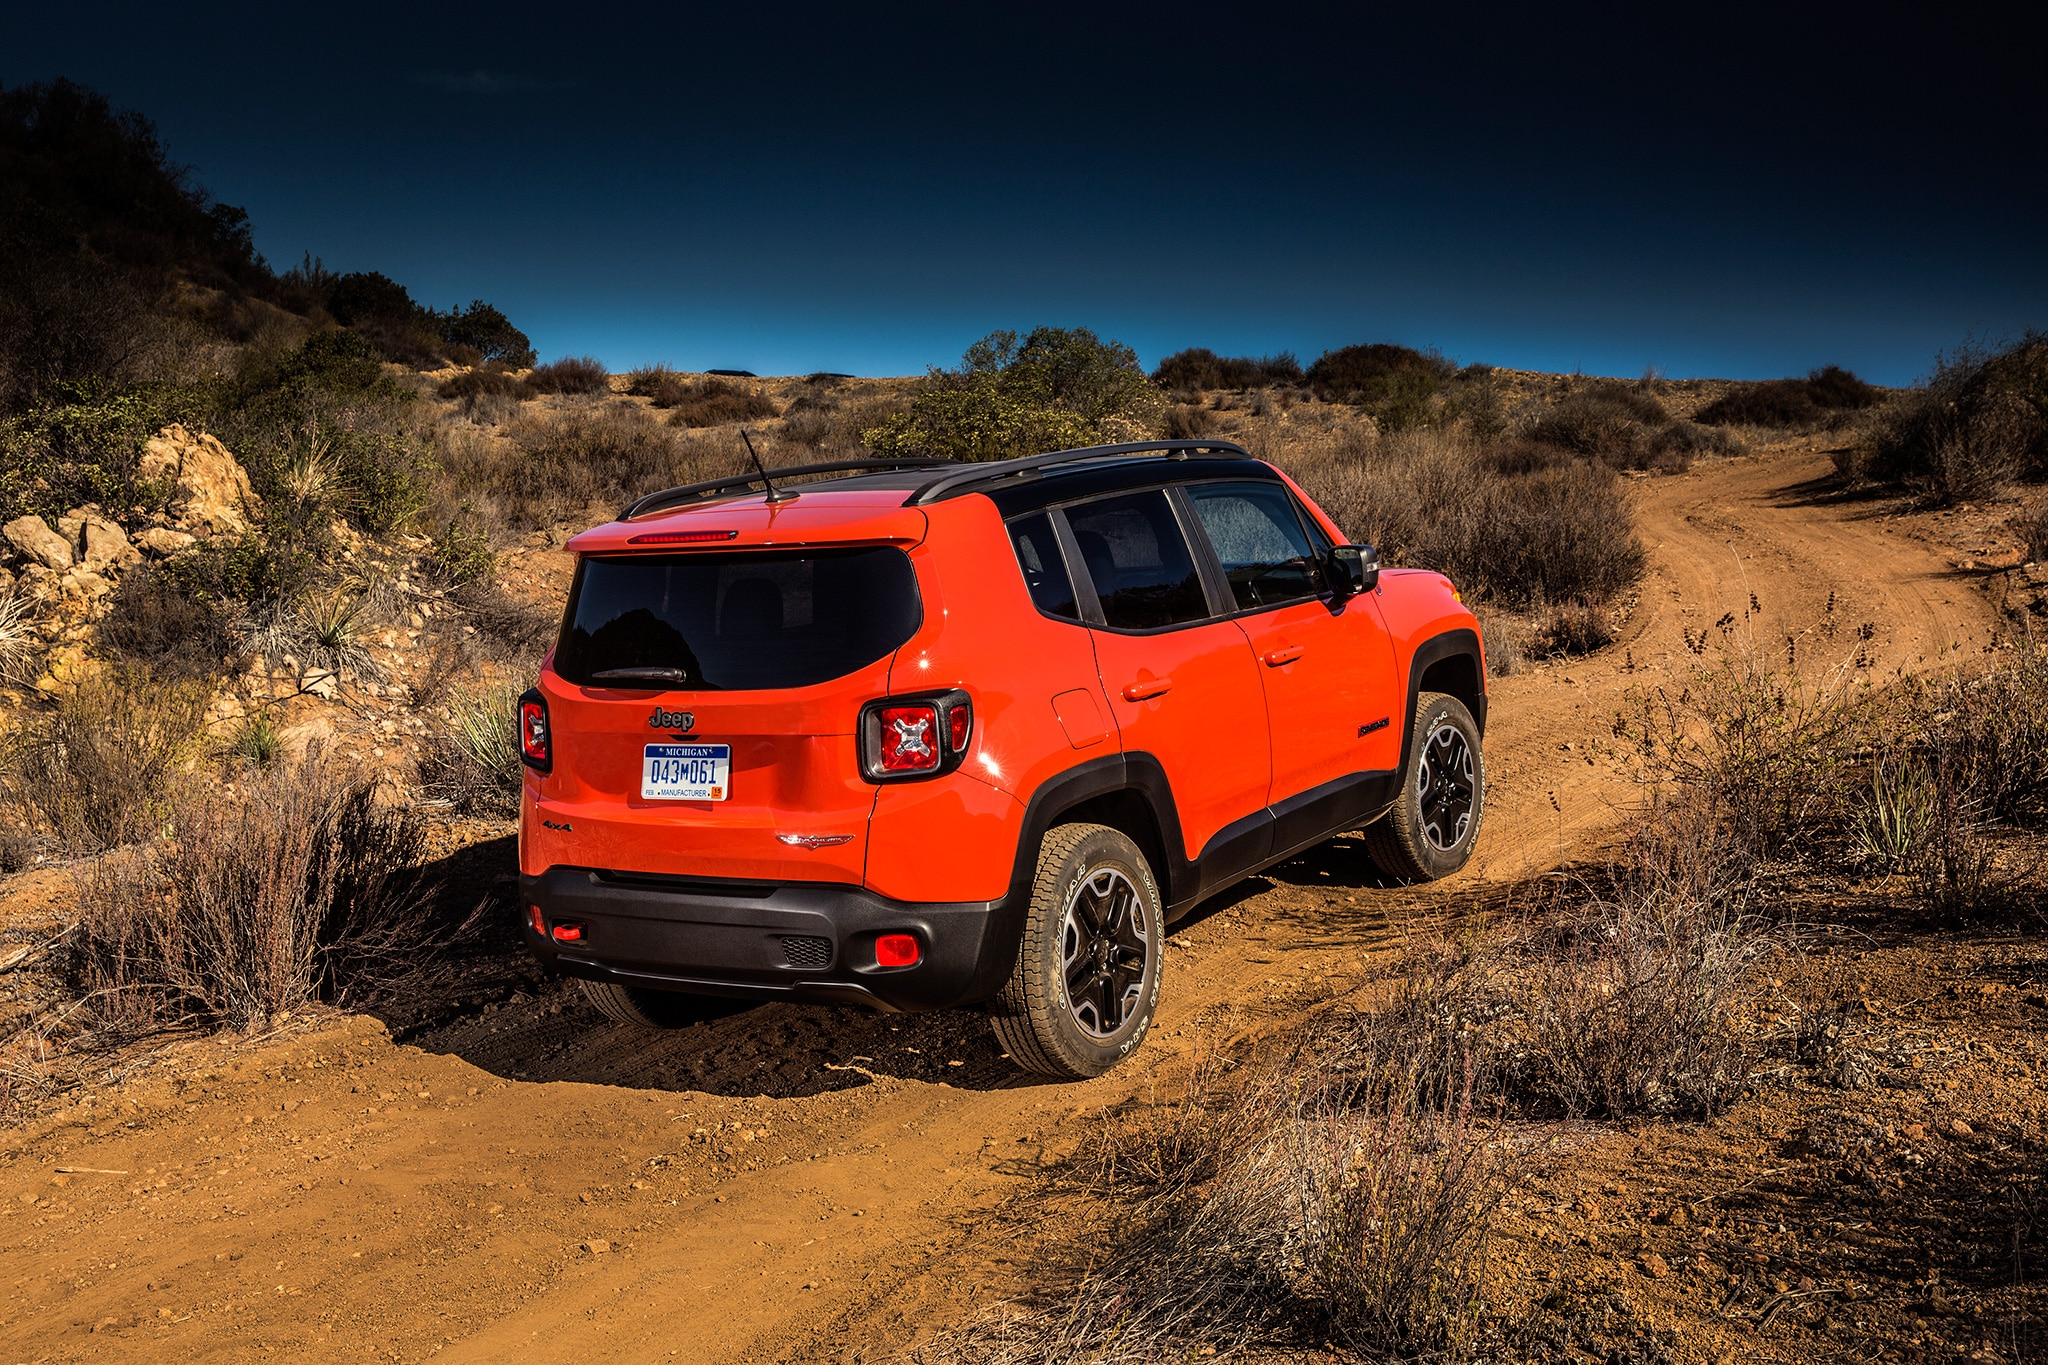 2017 Jeep Renegade Trailhawk rear three quarter 05 new 2017 jeep renegade deserthawk to debut at l a auto show 2018 Jeep Renegade at creativeand.co